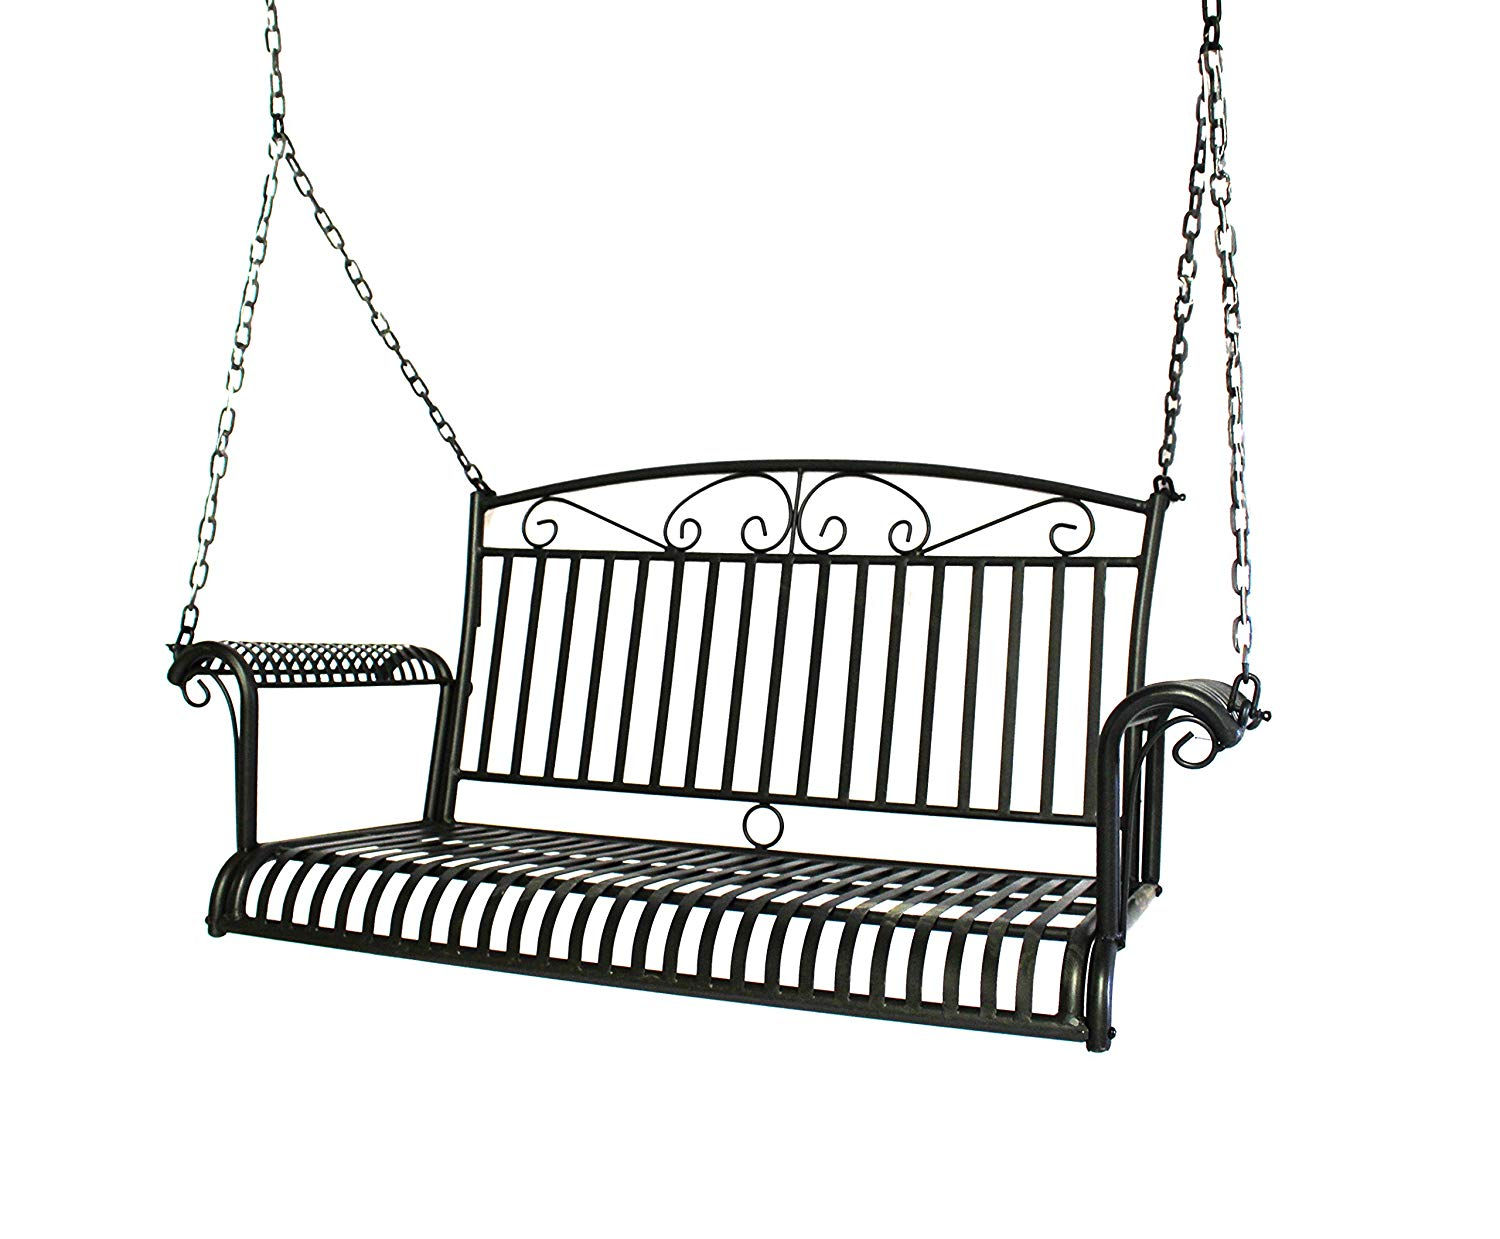 Courtyard Casual Black Steel French Quarter Outdoor Swing